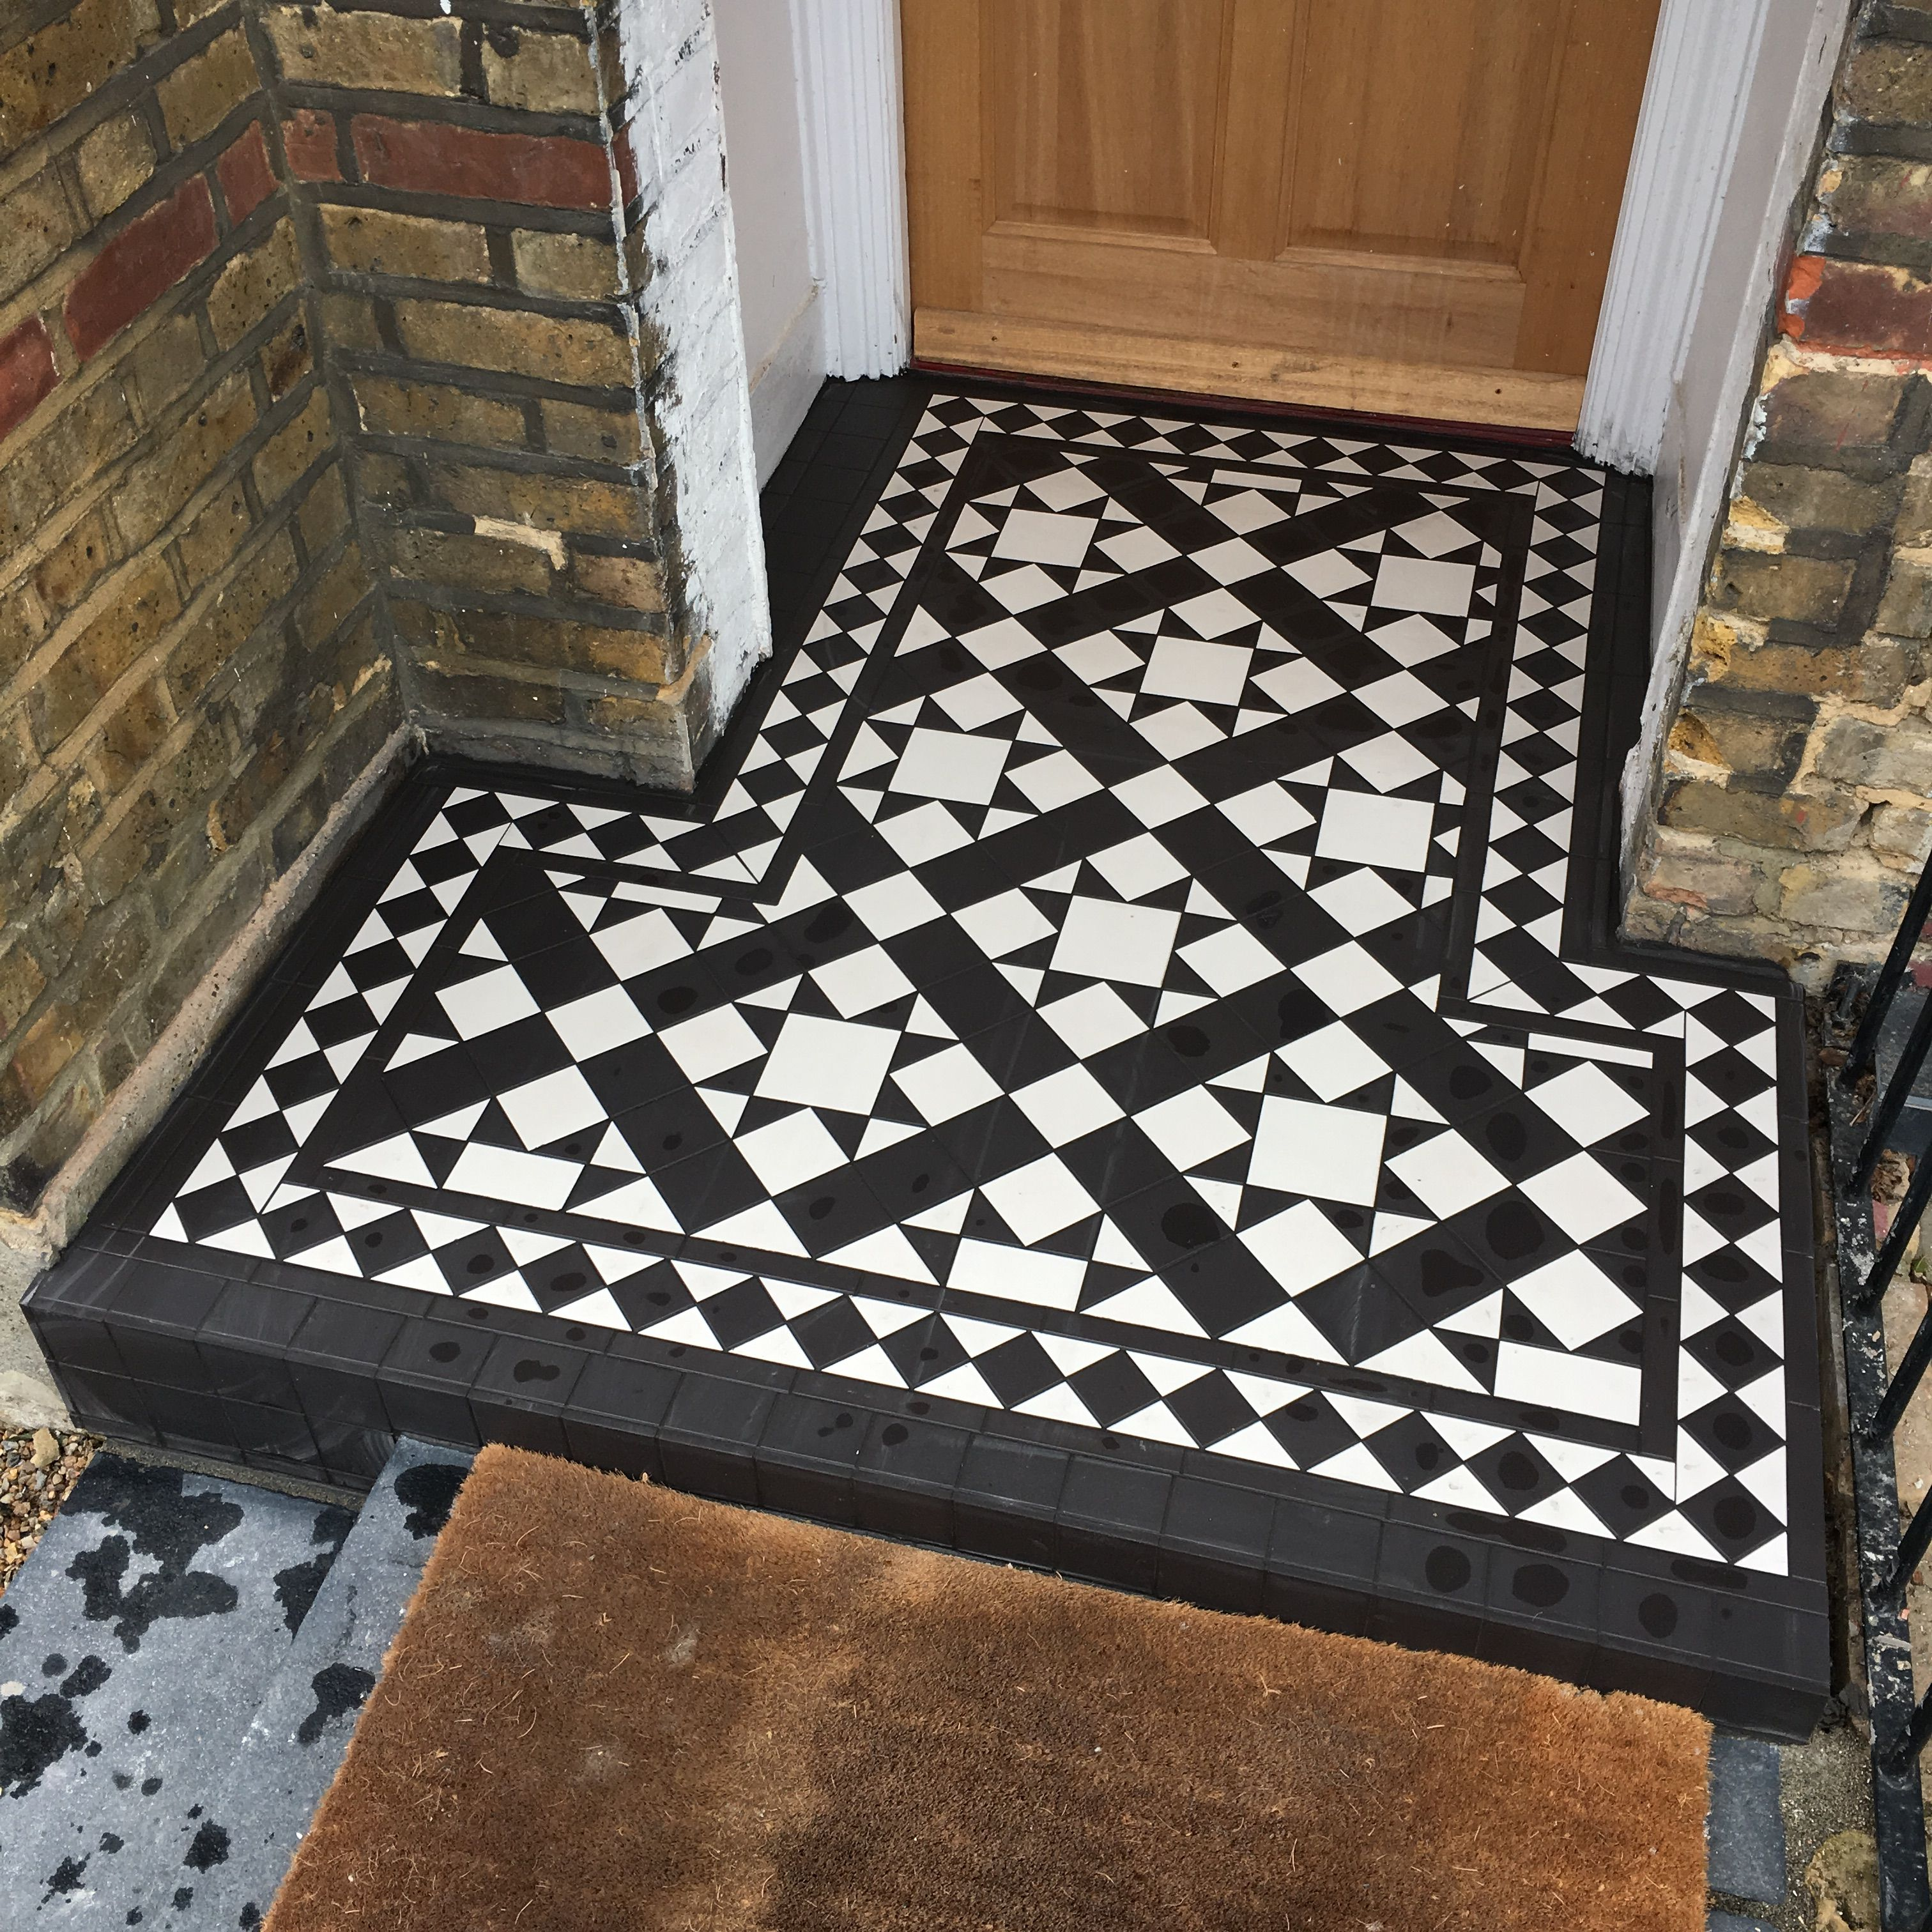 Stunning transformation of this porch step in bromley kent original stunning transformation of this porch step in bromley kent original style blenheim tiles installed by dailygadgetfo Images